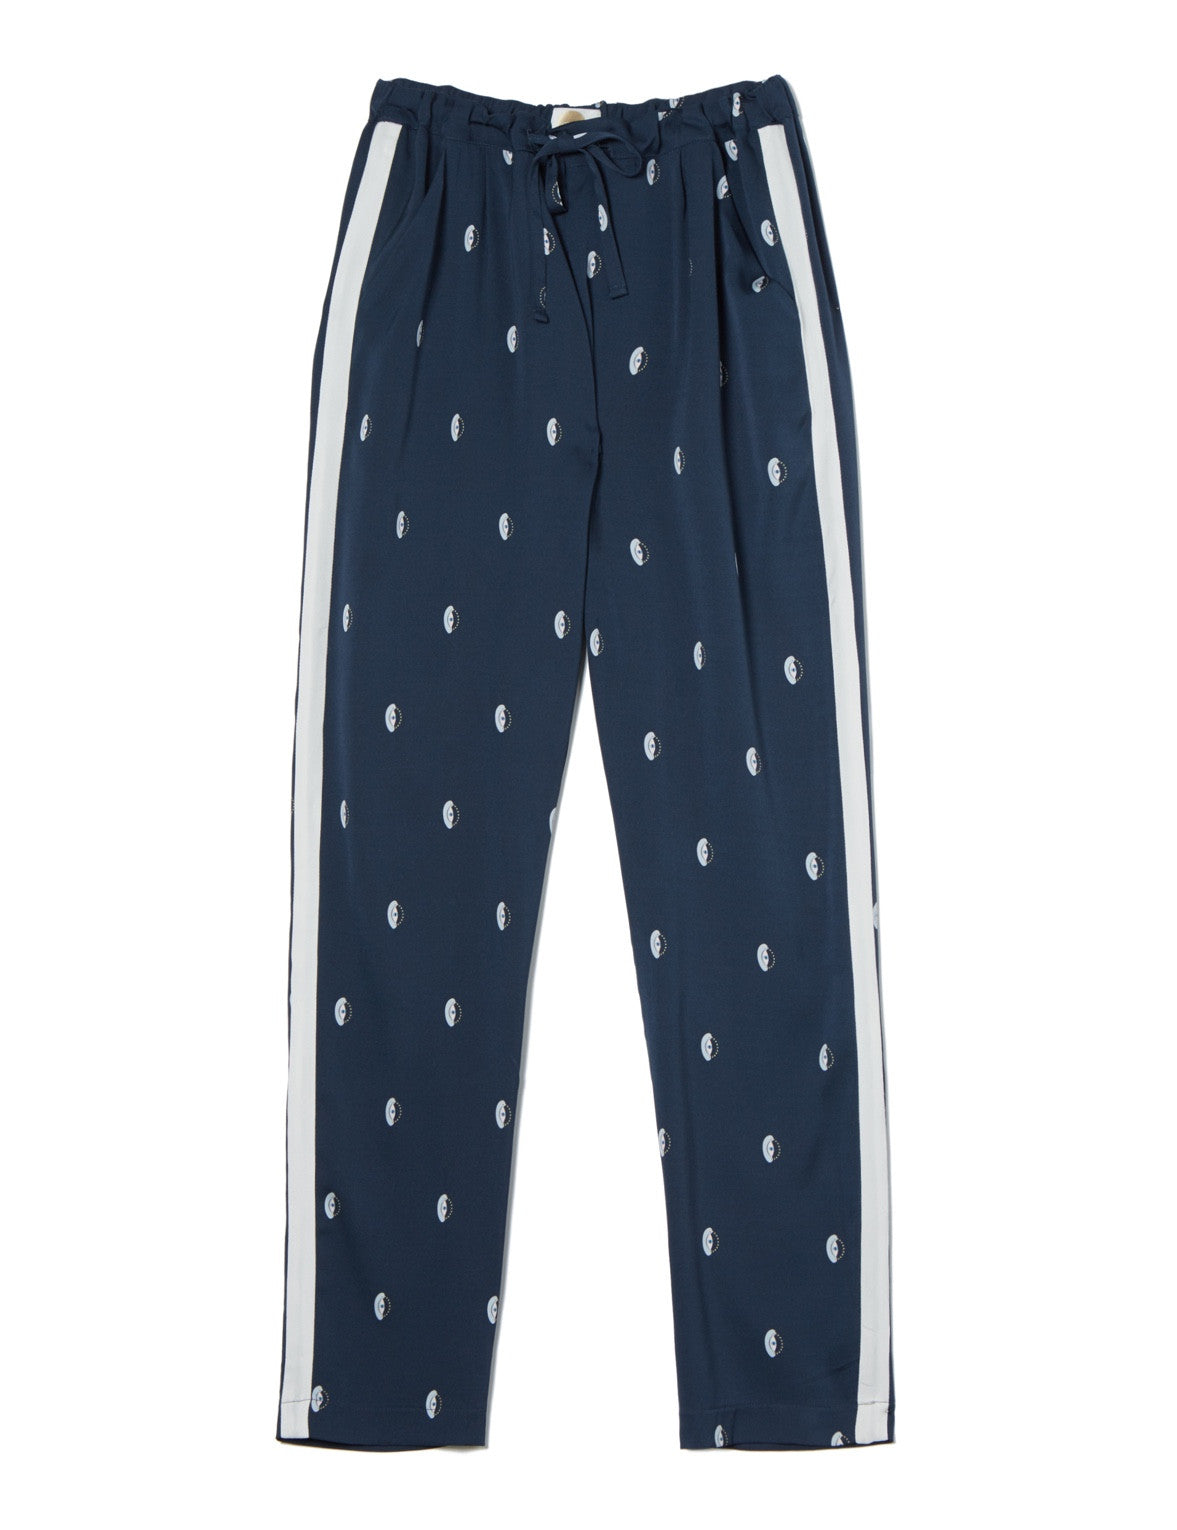 Libertine printed stretch silk loungepant